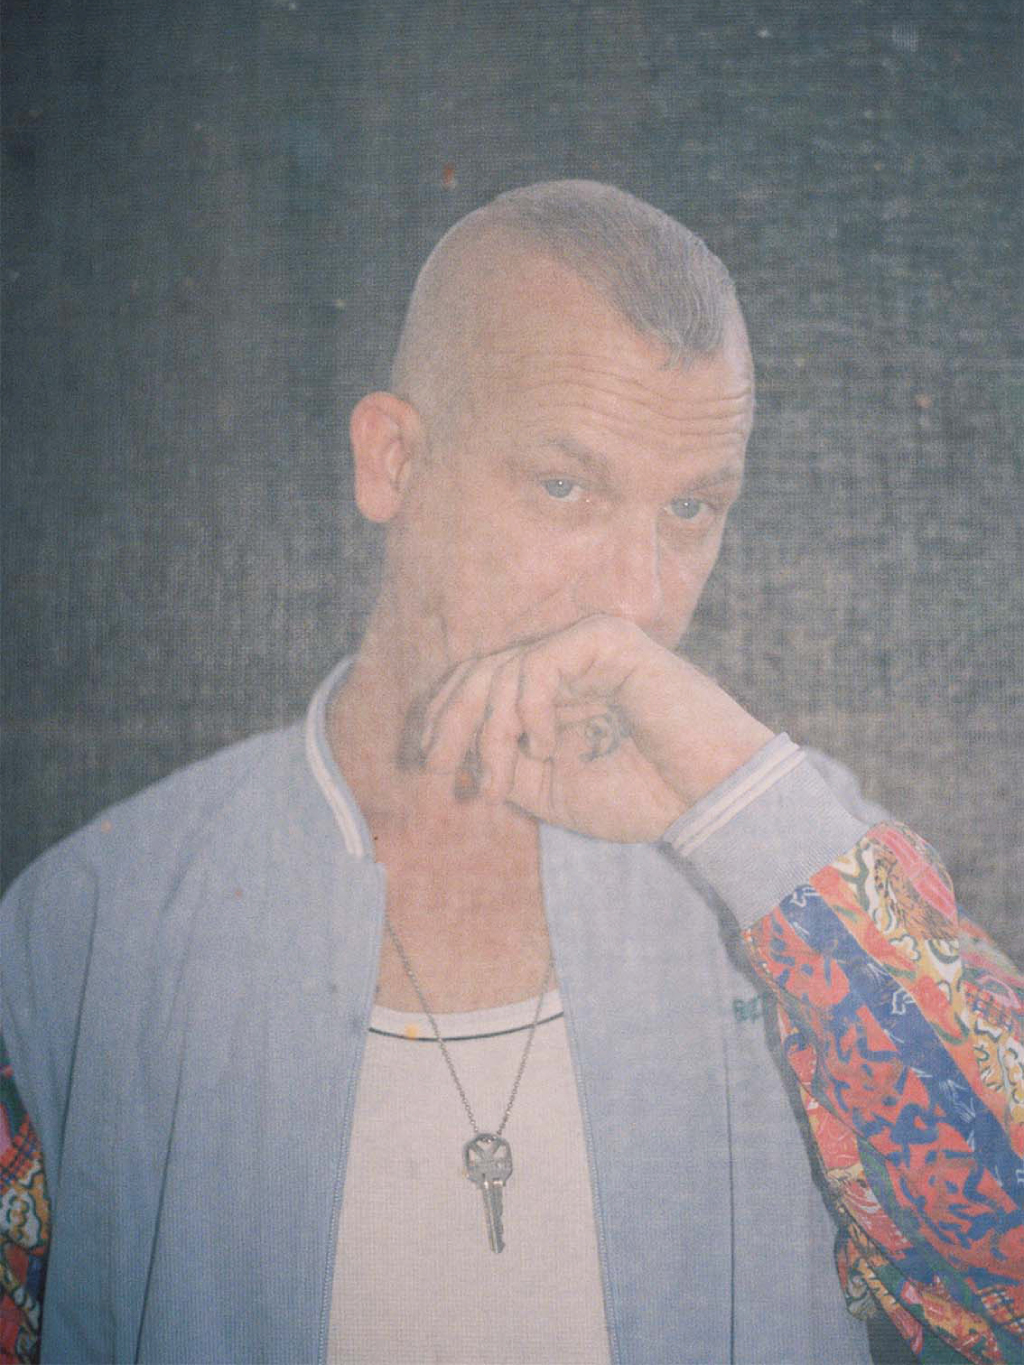 JASON DILL from vol.101